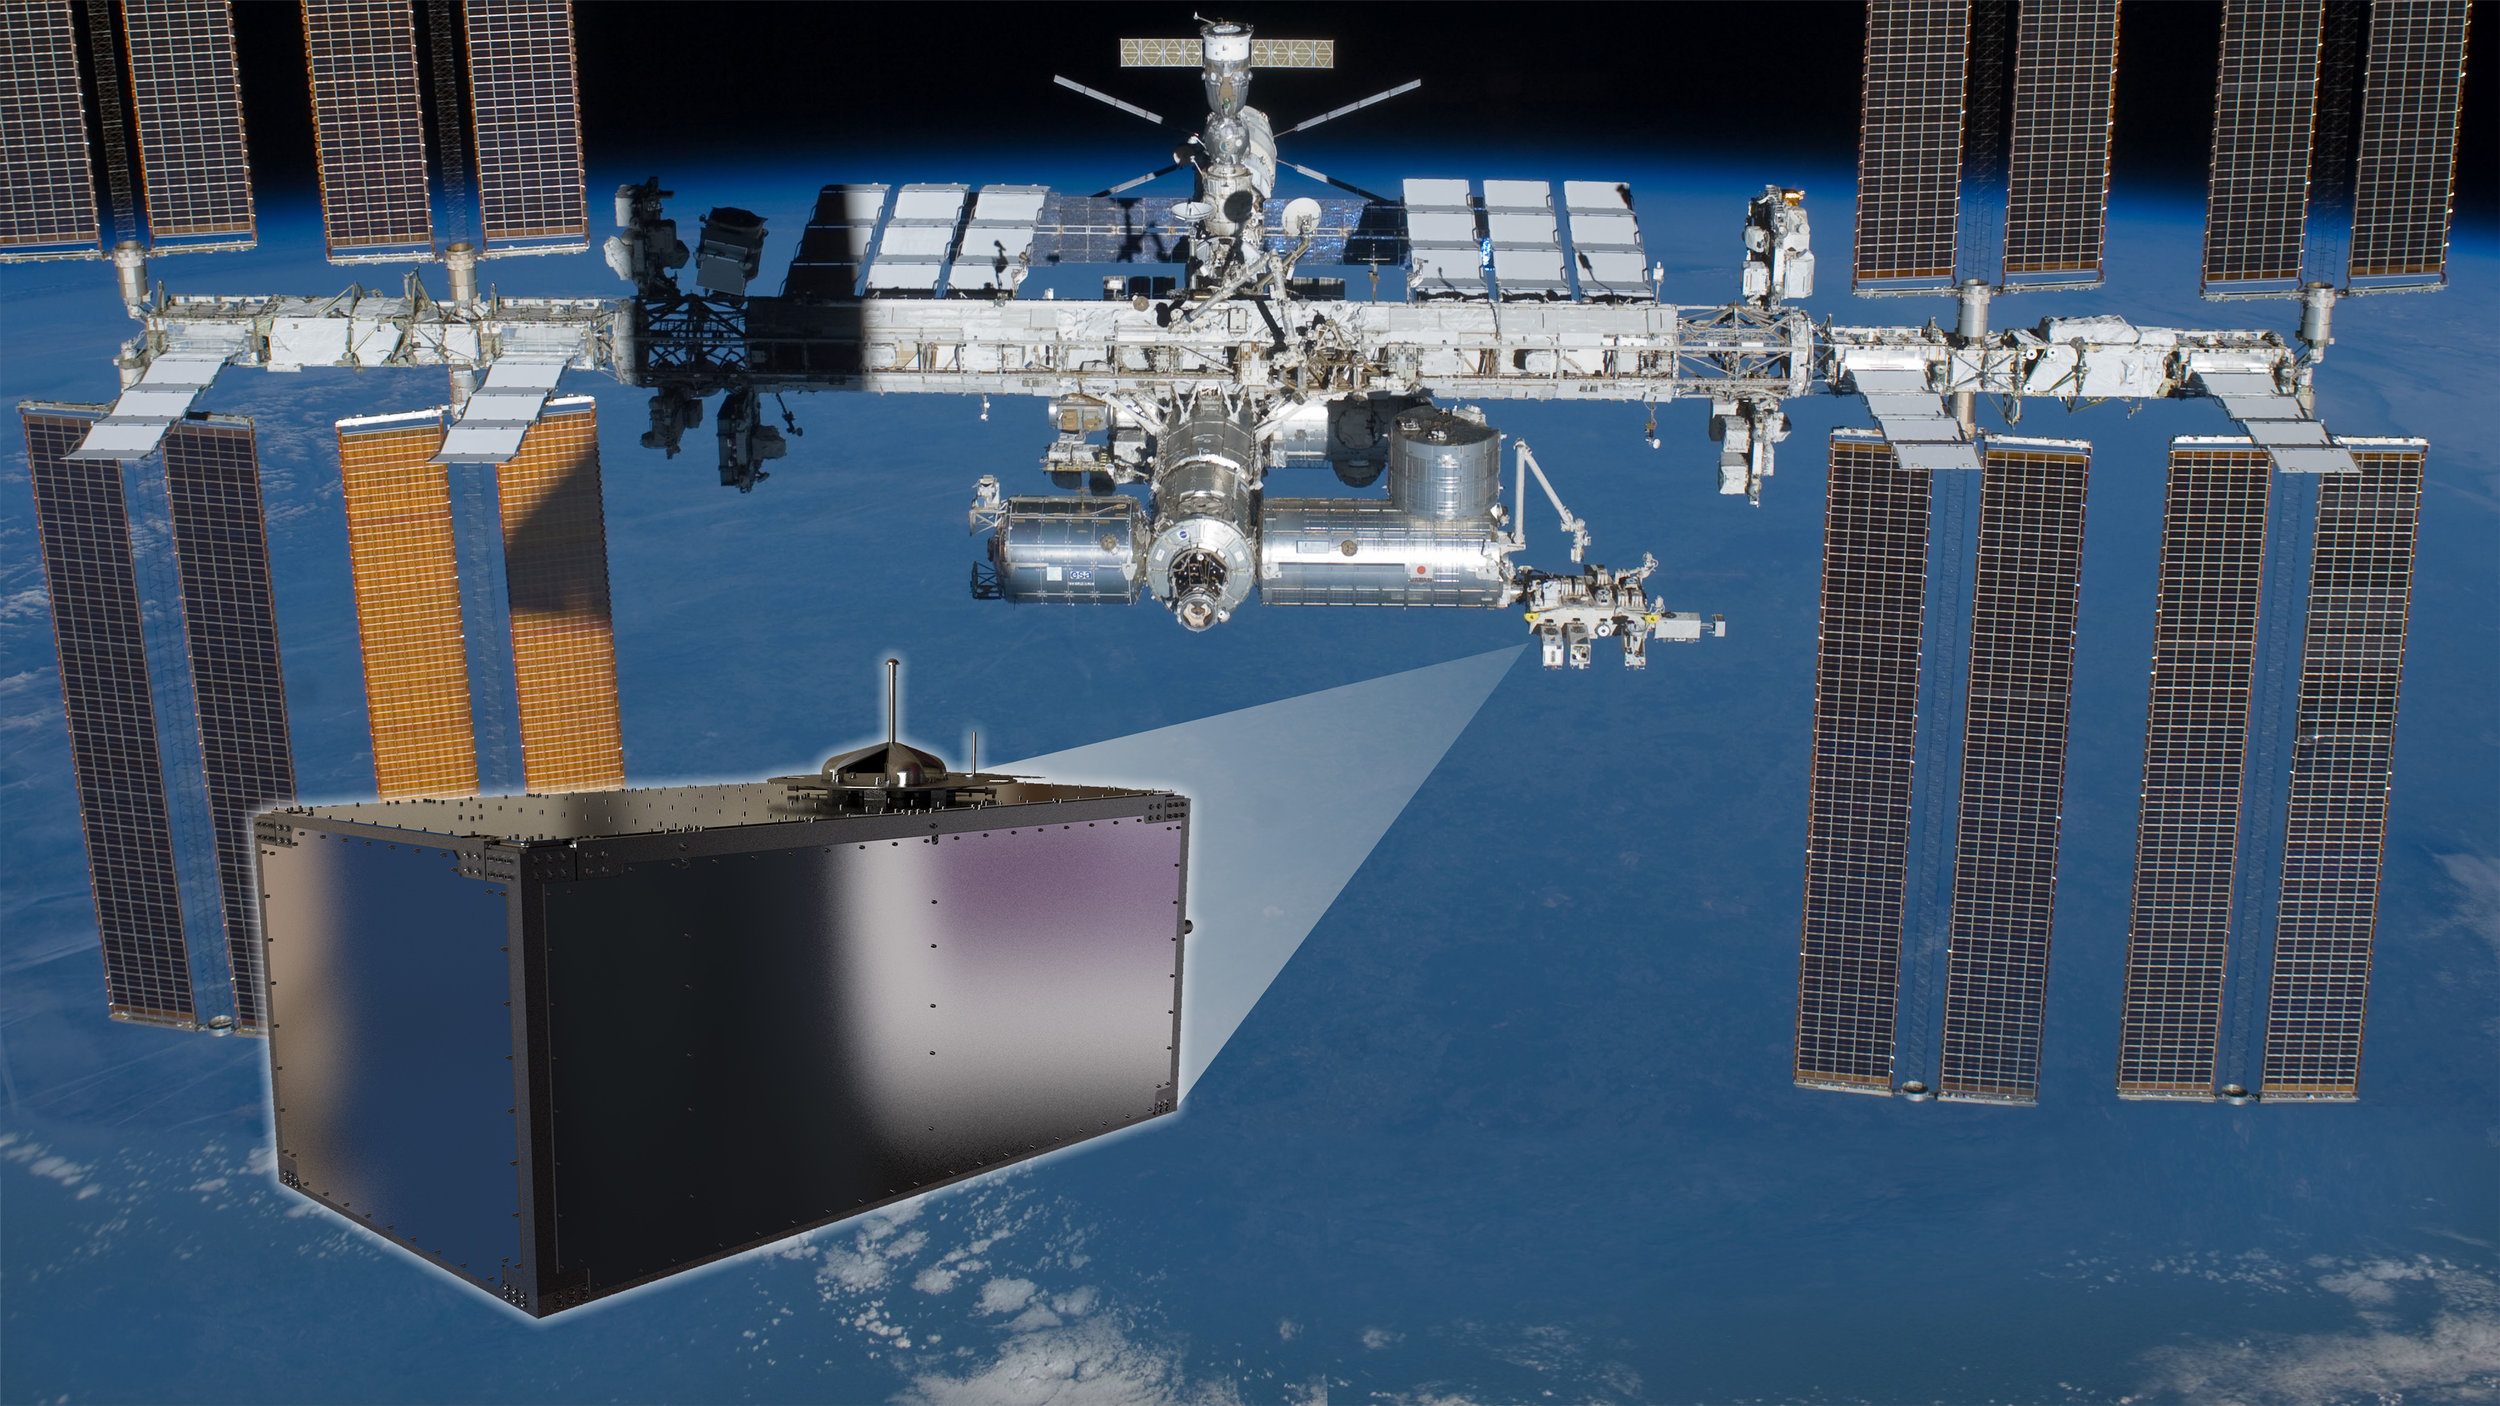 A photo illustration of the location of the CREAM experiment. Credit: NASA